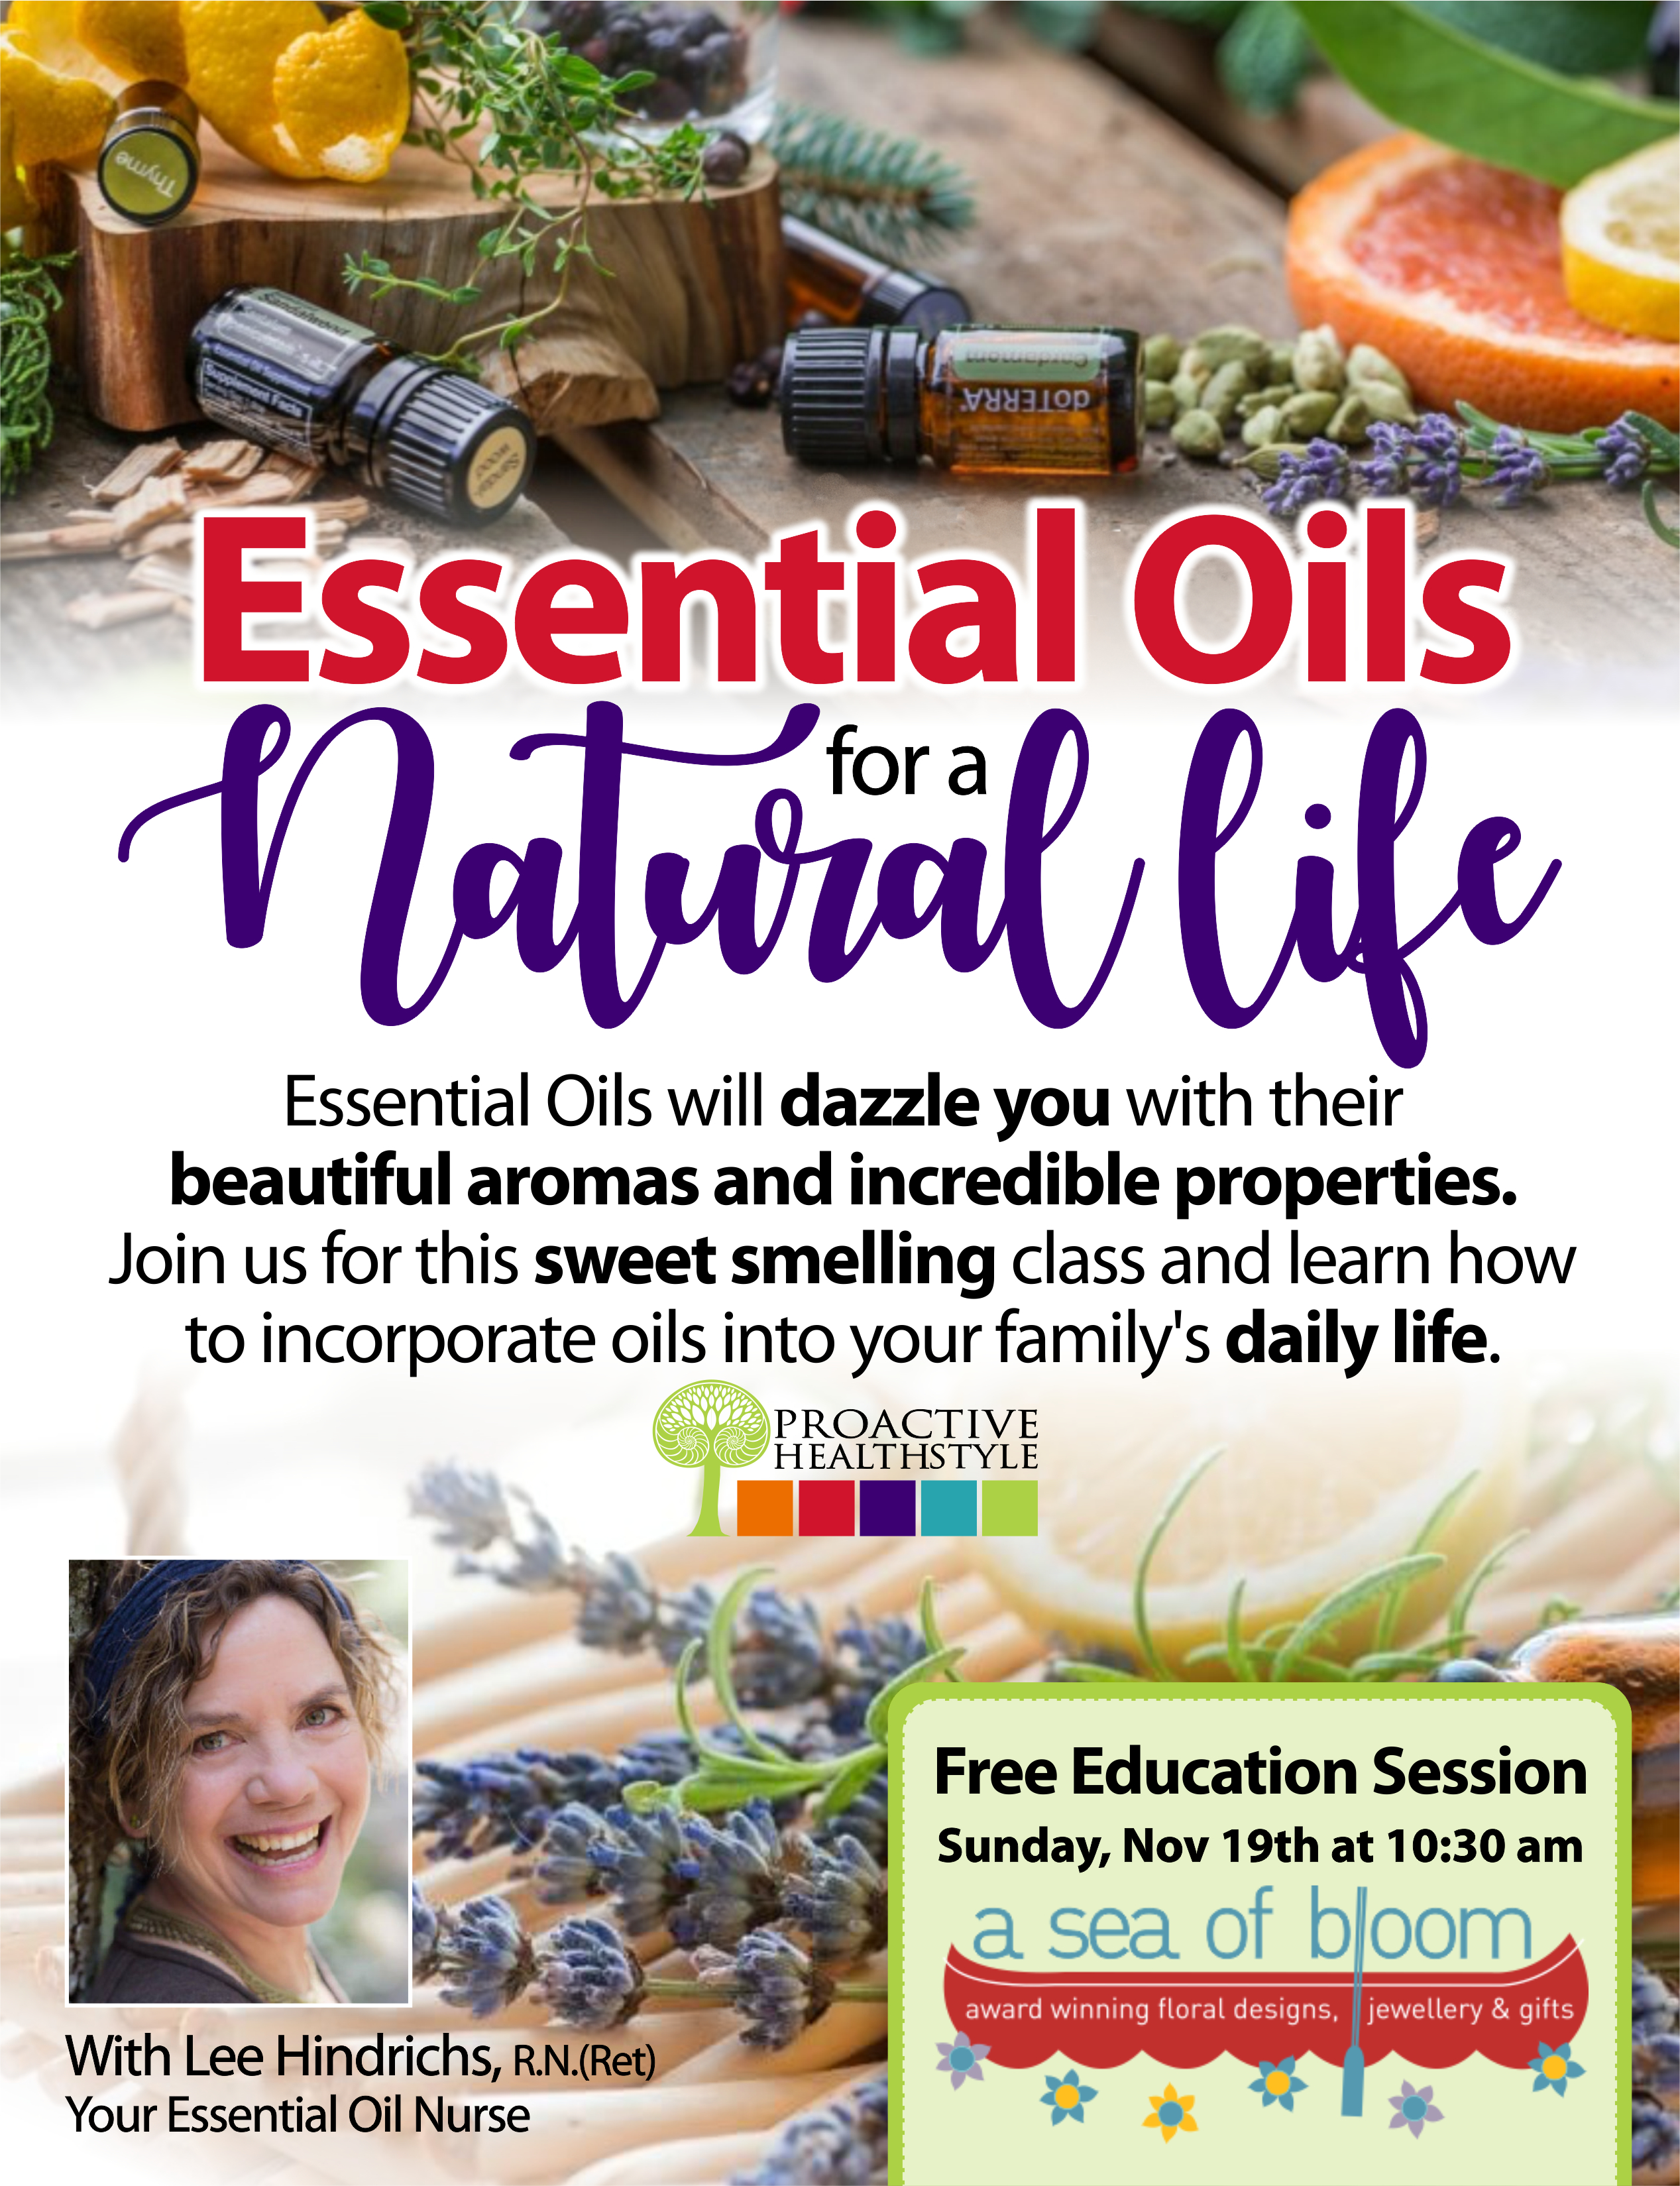 Oils-for-the-Natural-Life-Flyer.jpg